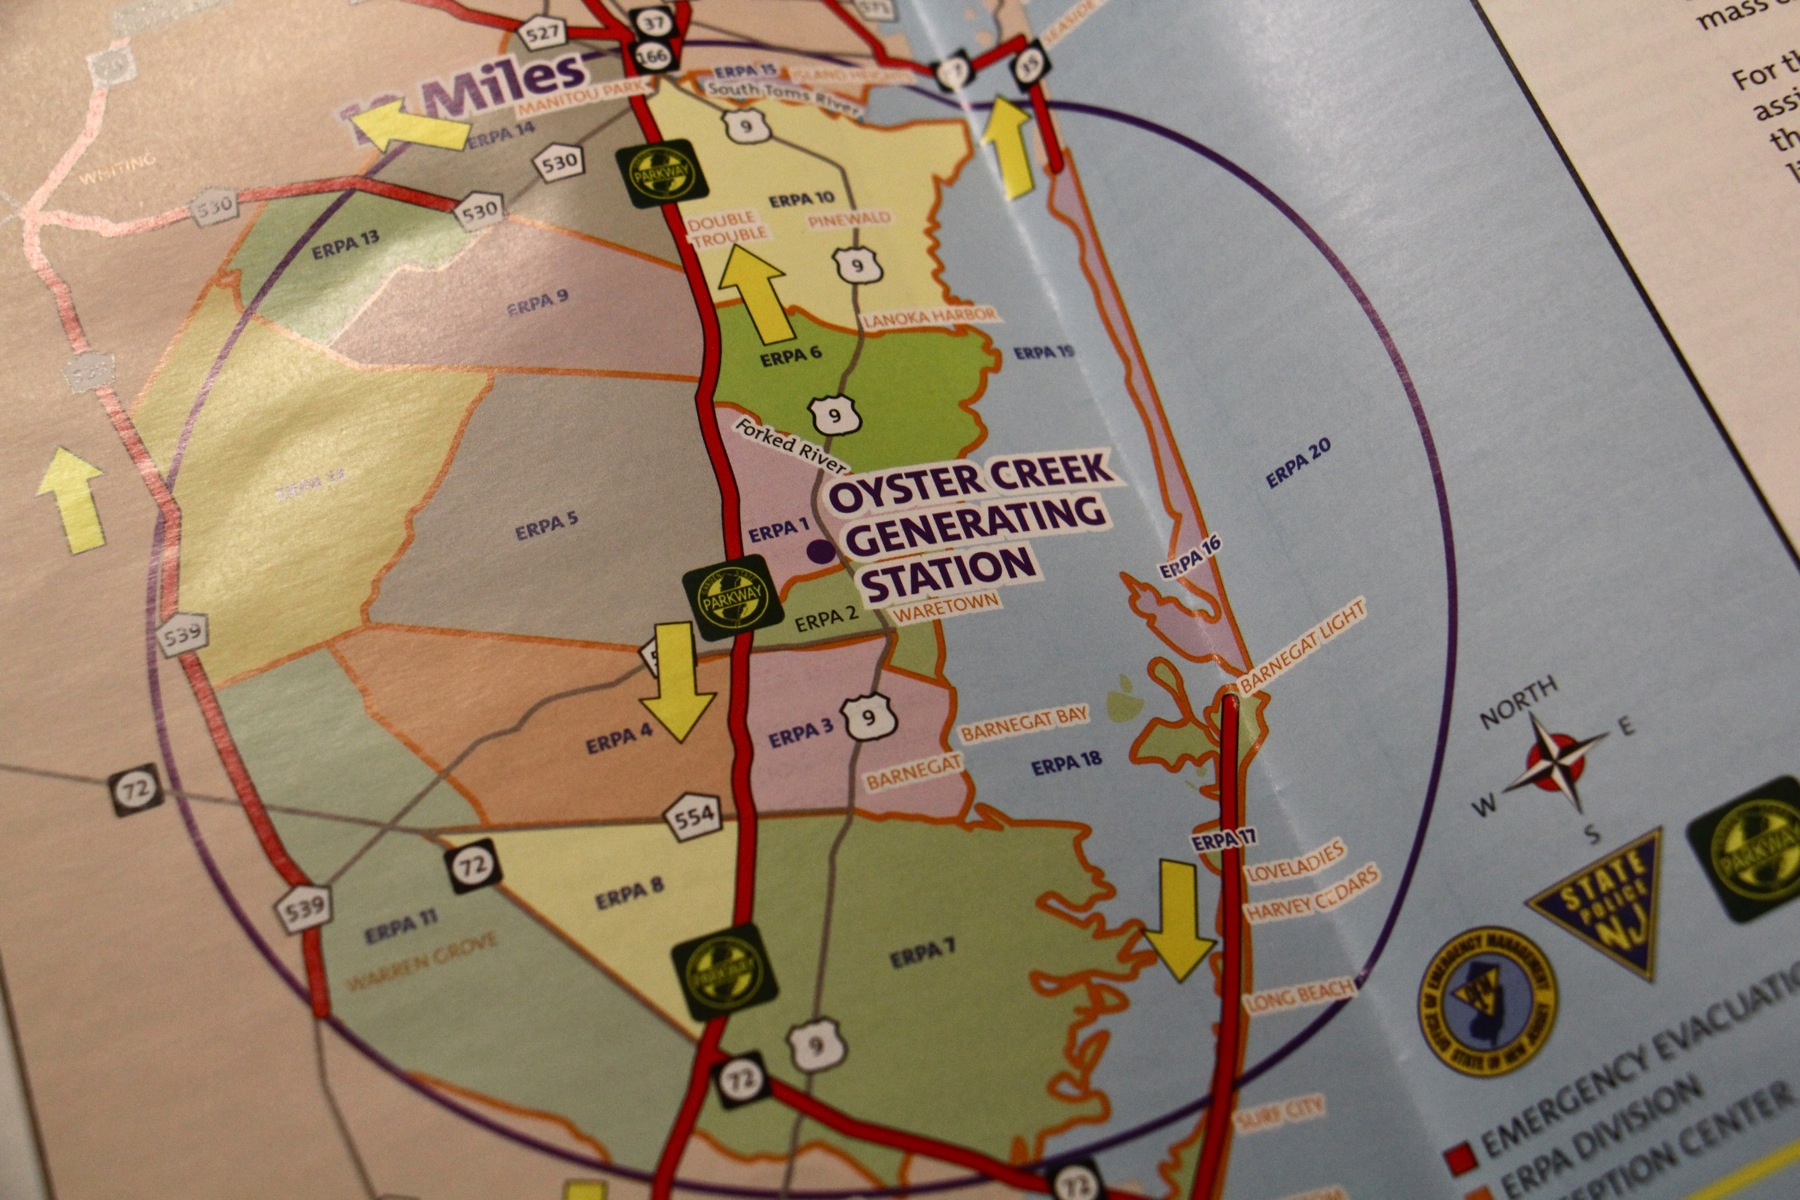 an emergency evacuation pamphlet shows the 10 mile radius around oyster creek generating station emma lee whyy